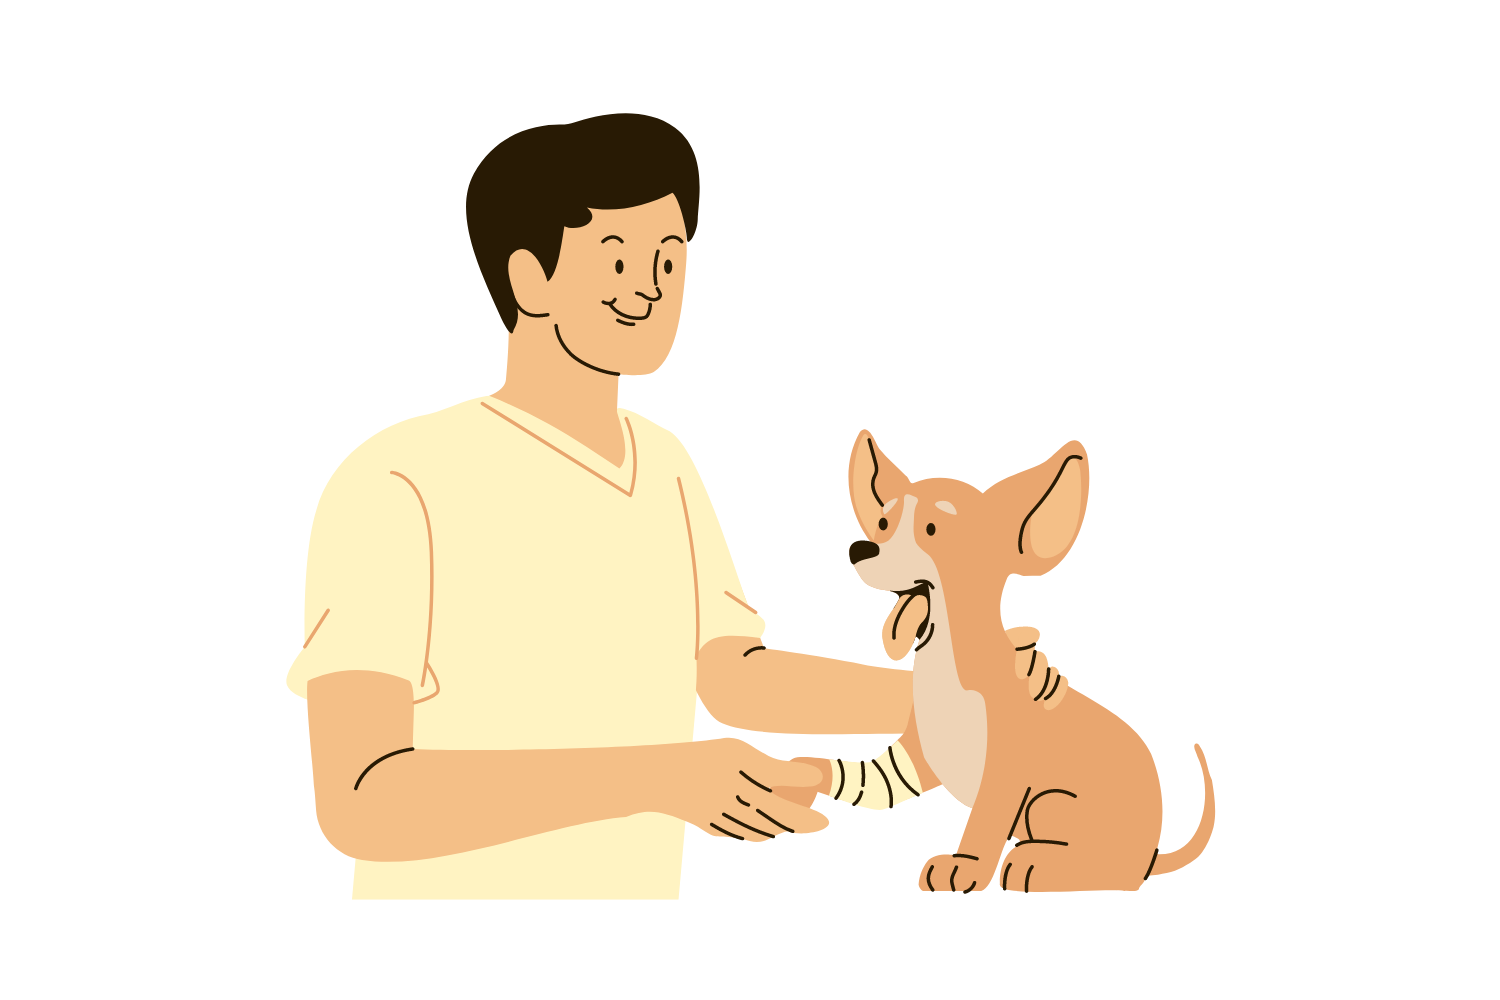 Caring for animals is empathy